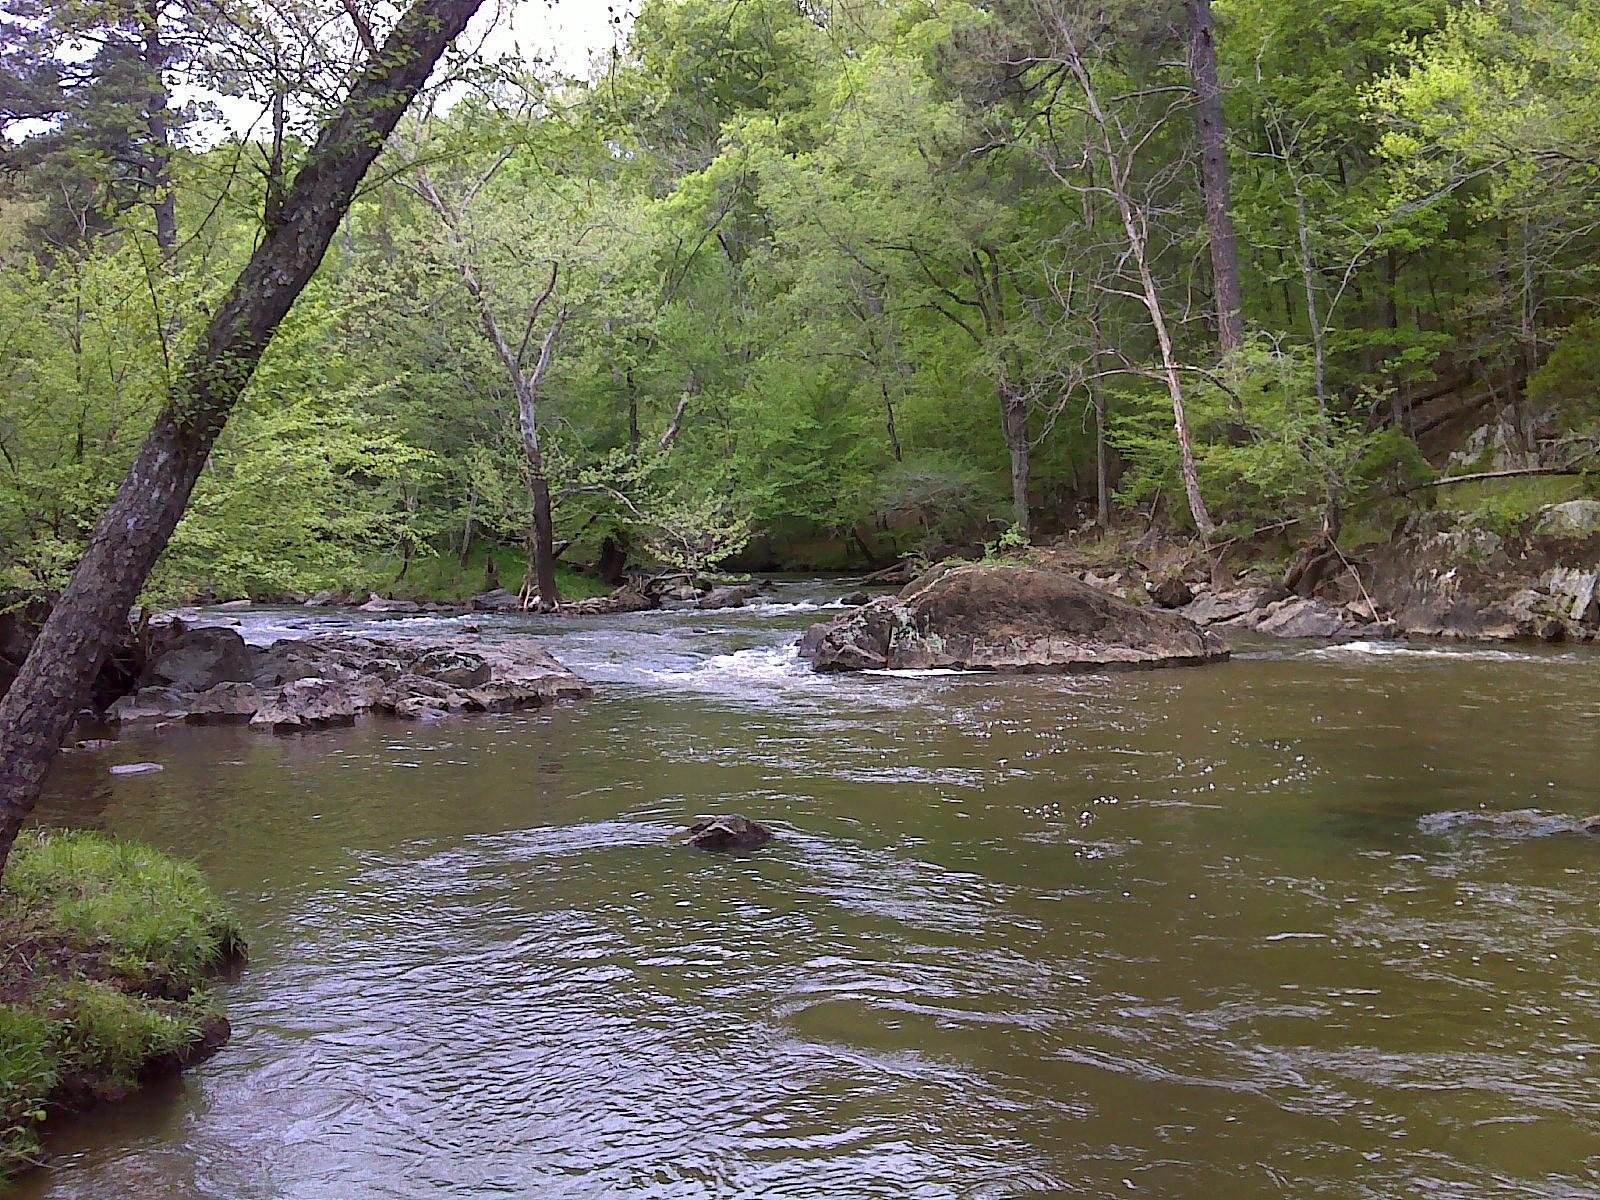 Photo of Mountains-to-Sea Trail, Eno River, wonderful walking beside the river 28-APR-14 10:48:36 AM